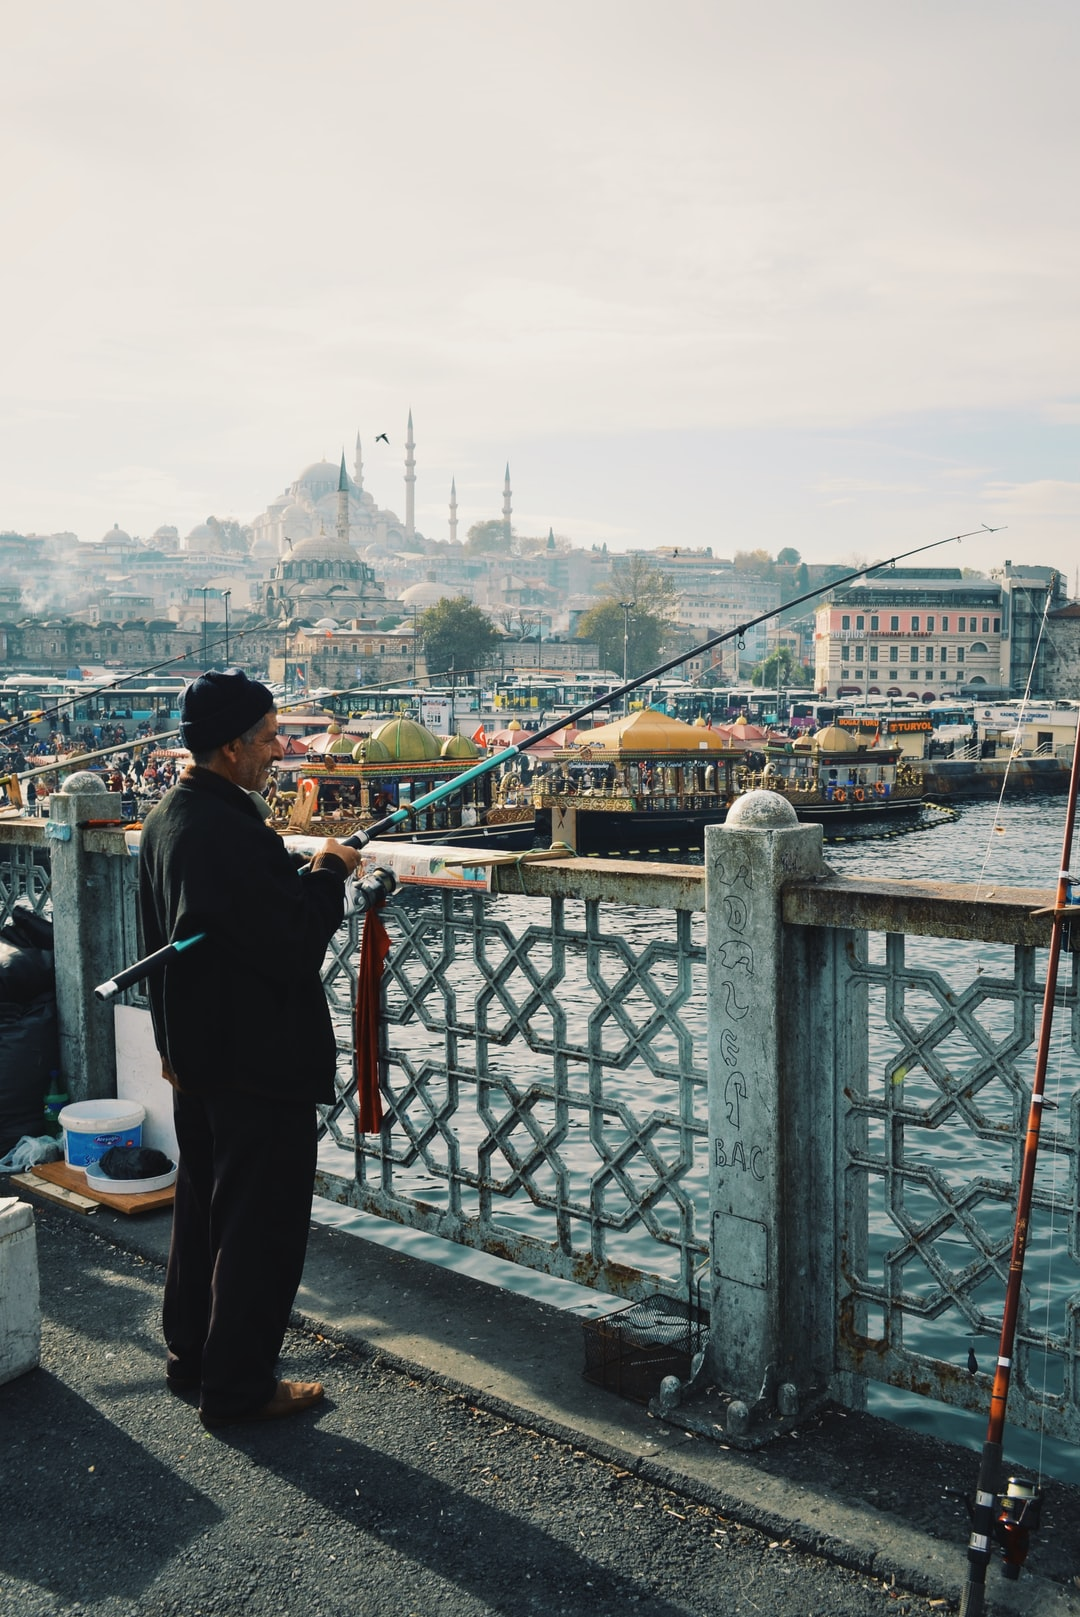 These fishermen are working daily on the Galata Bridge and taking the fish they catch to the market on the lower level of the walk. It's beautiful to contemplate their camaraderie and just enjoy a moment of serenity in the middle of the buzz from the 15 million citizens of Istanbul.